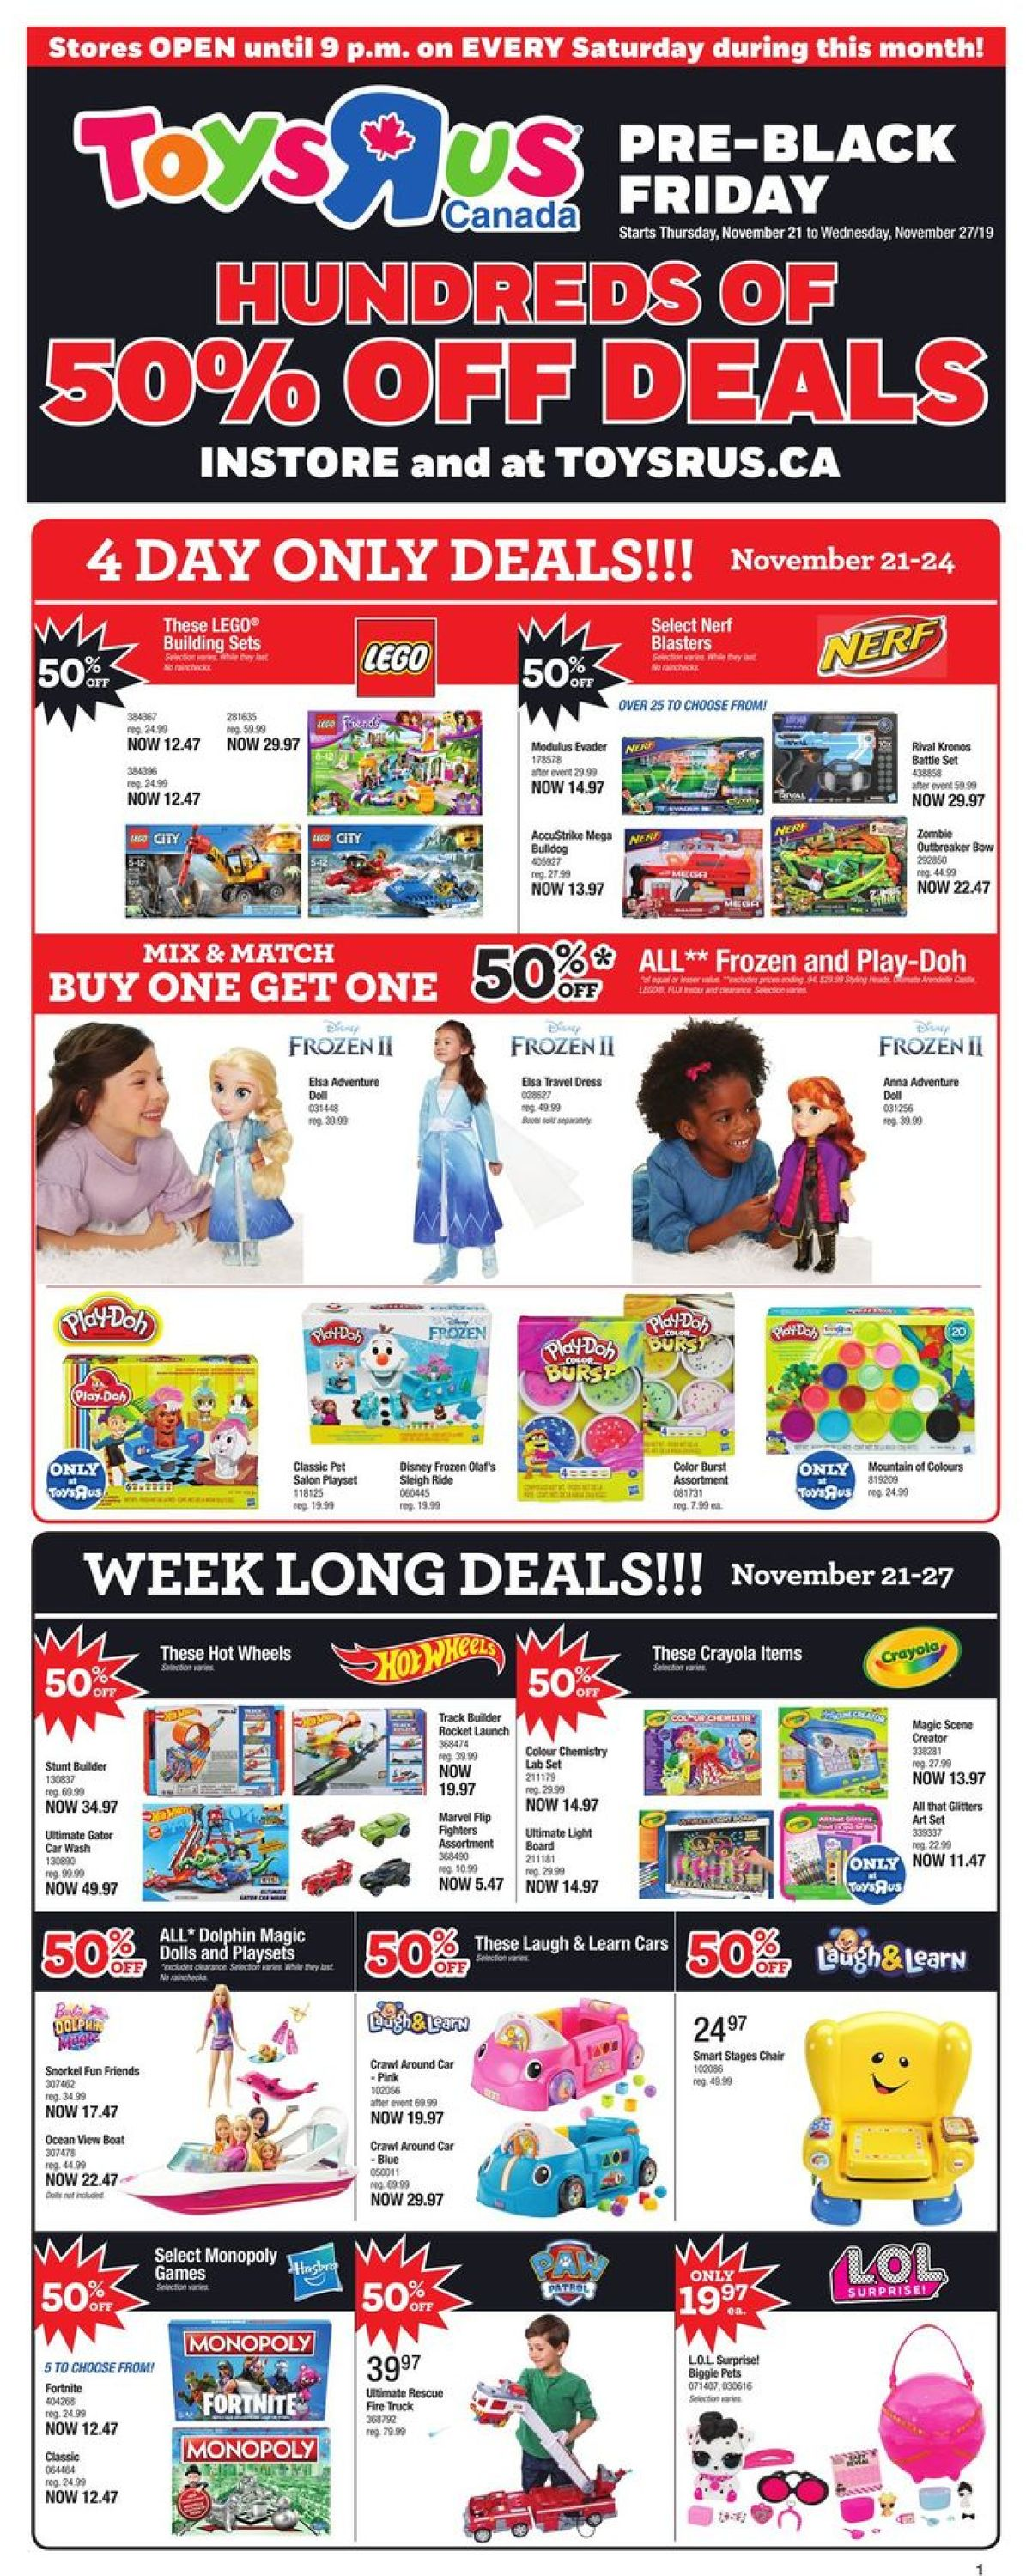 Toys''R''Us PRE-BLACK FRIDAY FLYER 2019